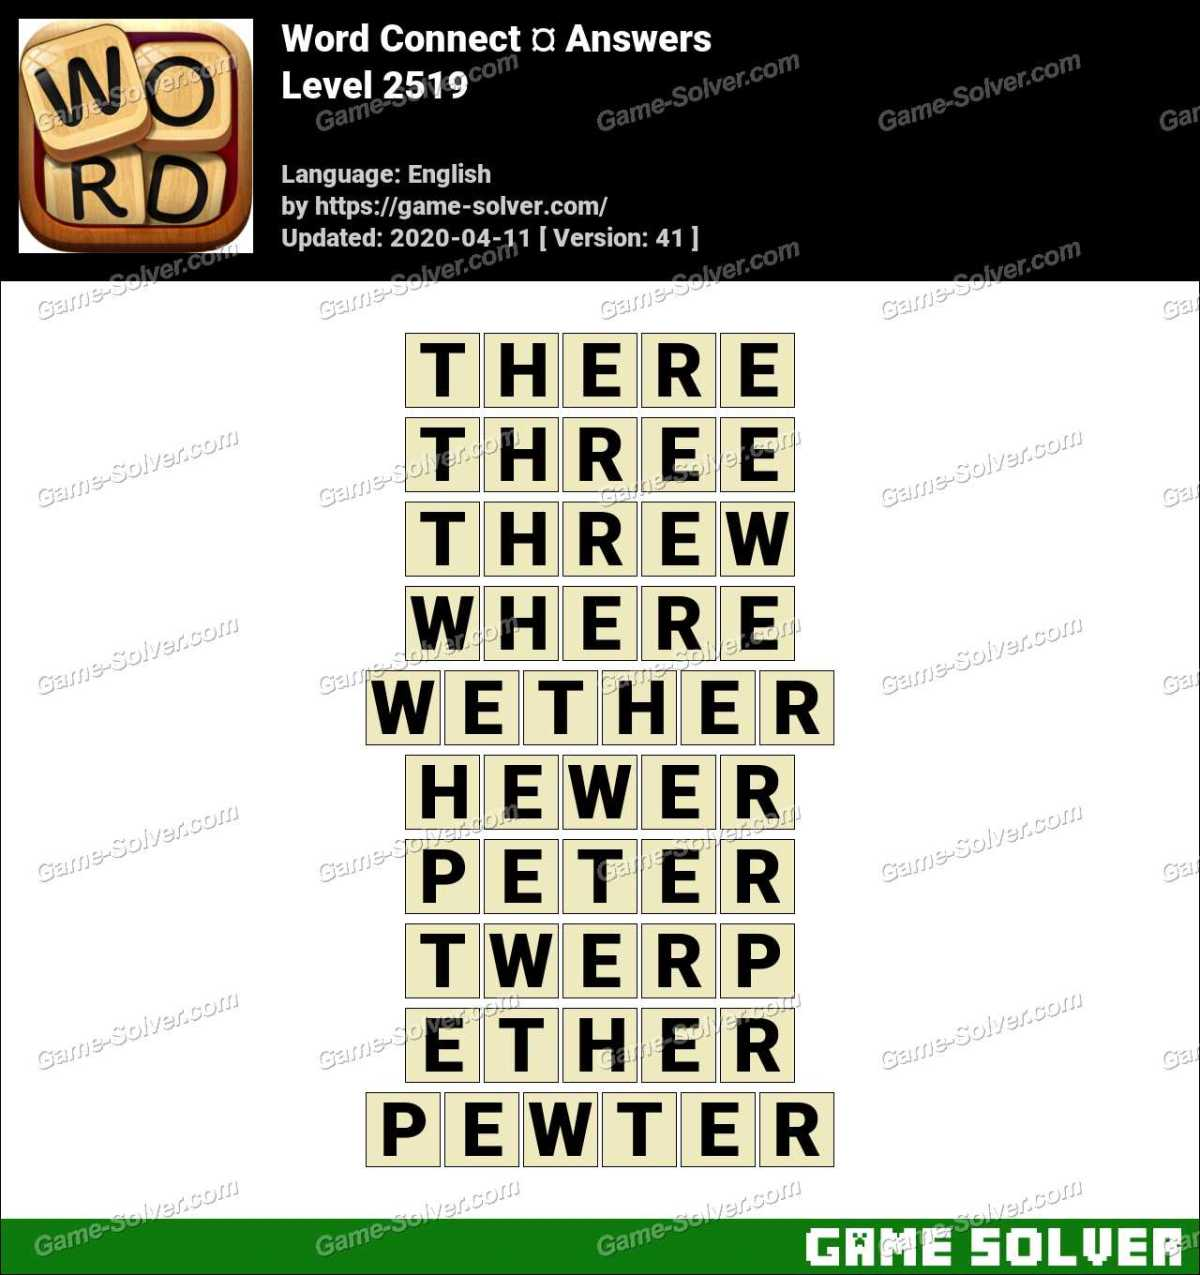 Word Connect Level 2519 Answers